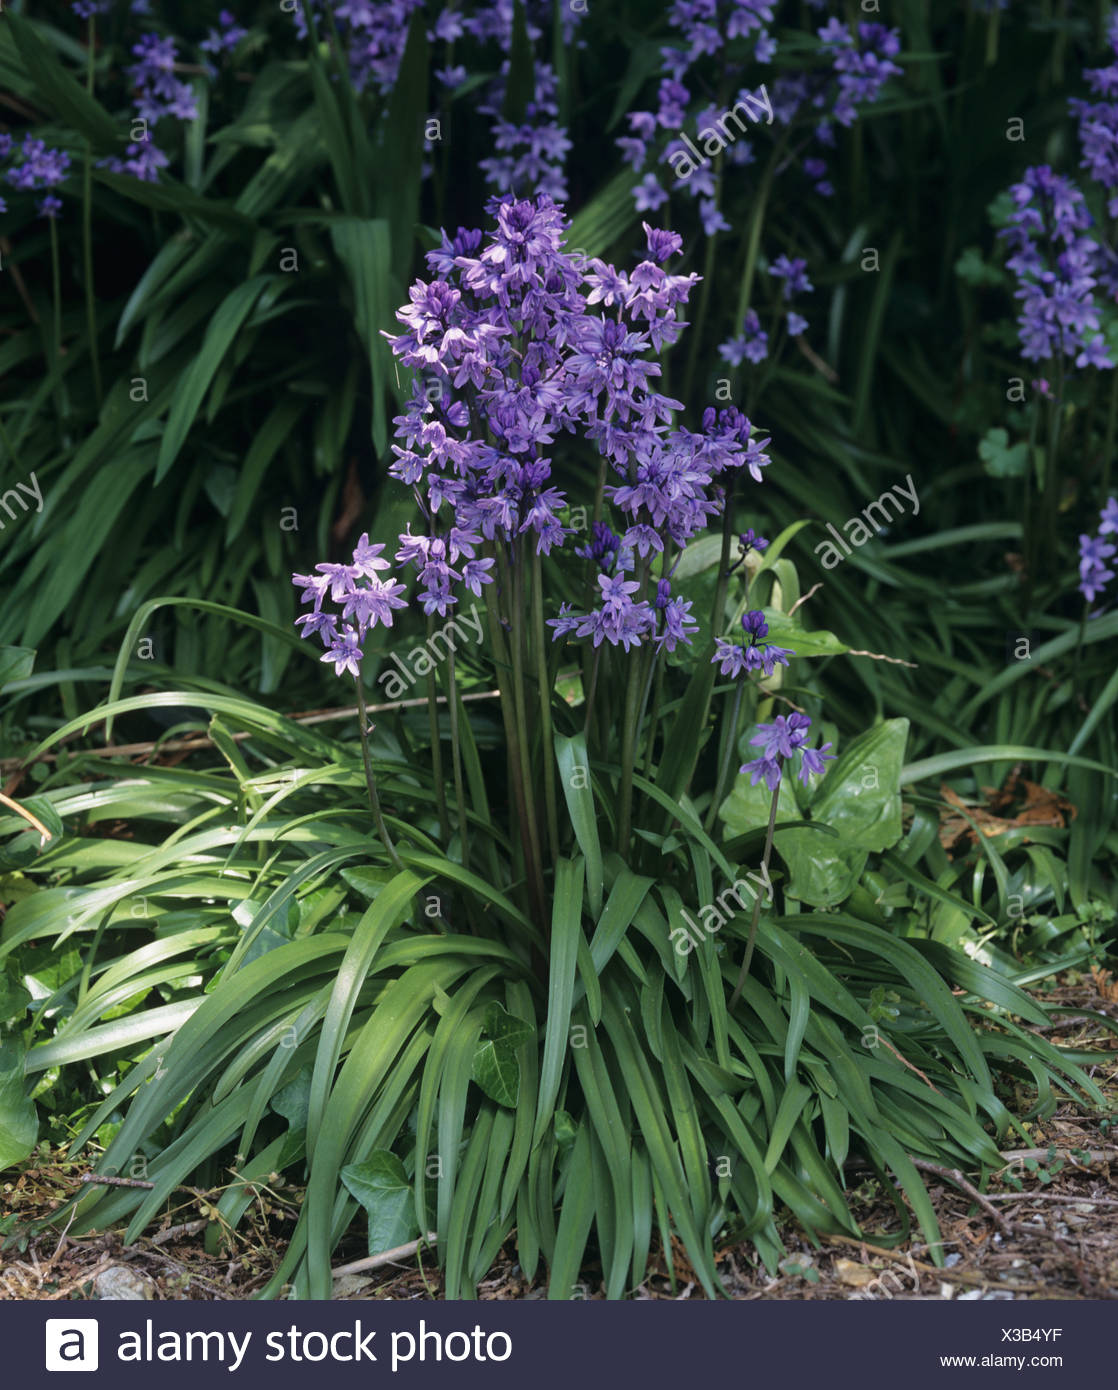 A flowering plant group of Spanish bluebells Hyacinthoides hispanica Stock Photo